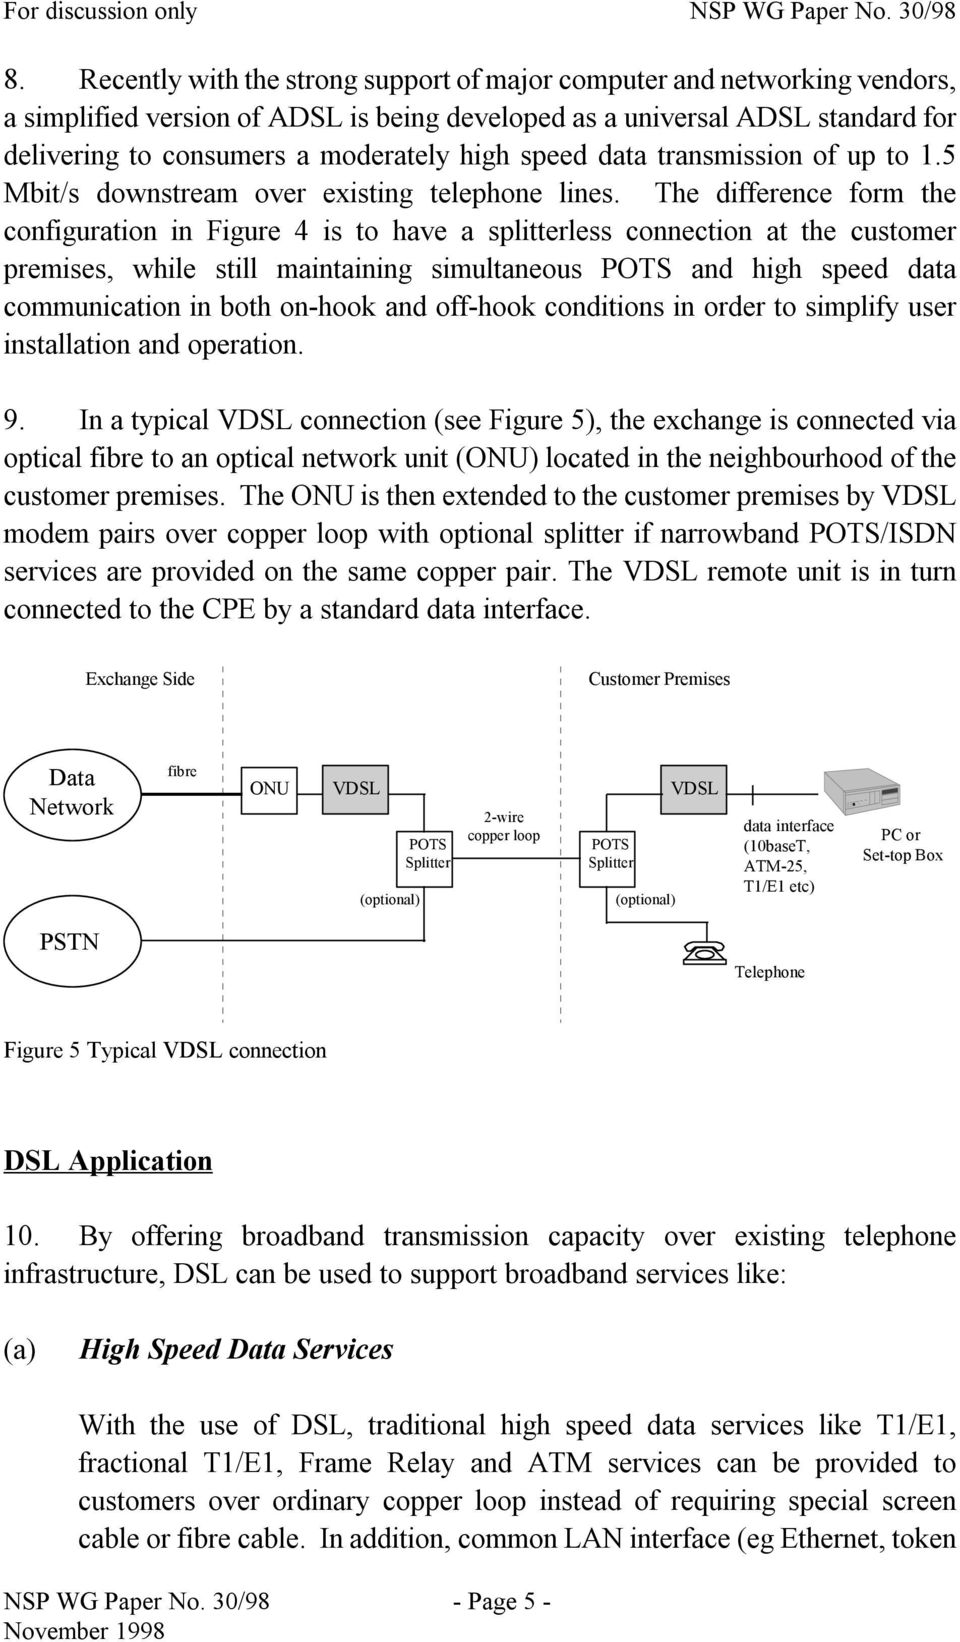 The difference form the configuration in Figure 4 is to have a splitterless connection at the customer premises, while still maintaining simultaneous POTS and high speed data communication in both